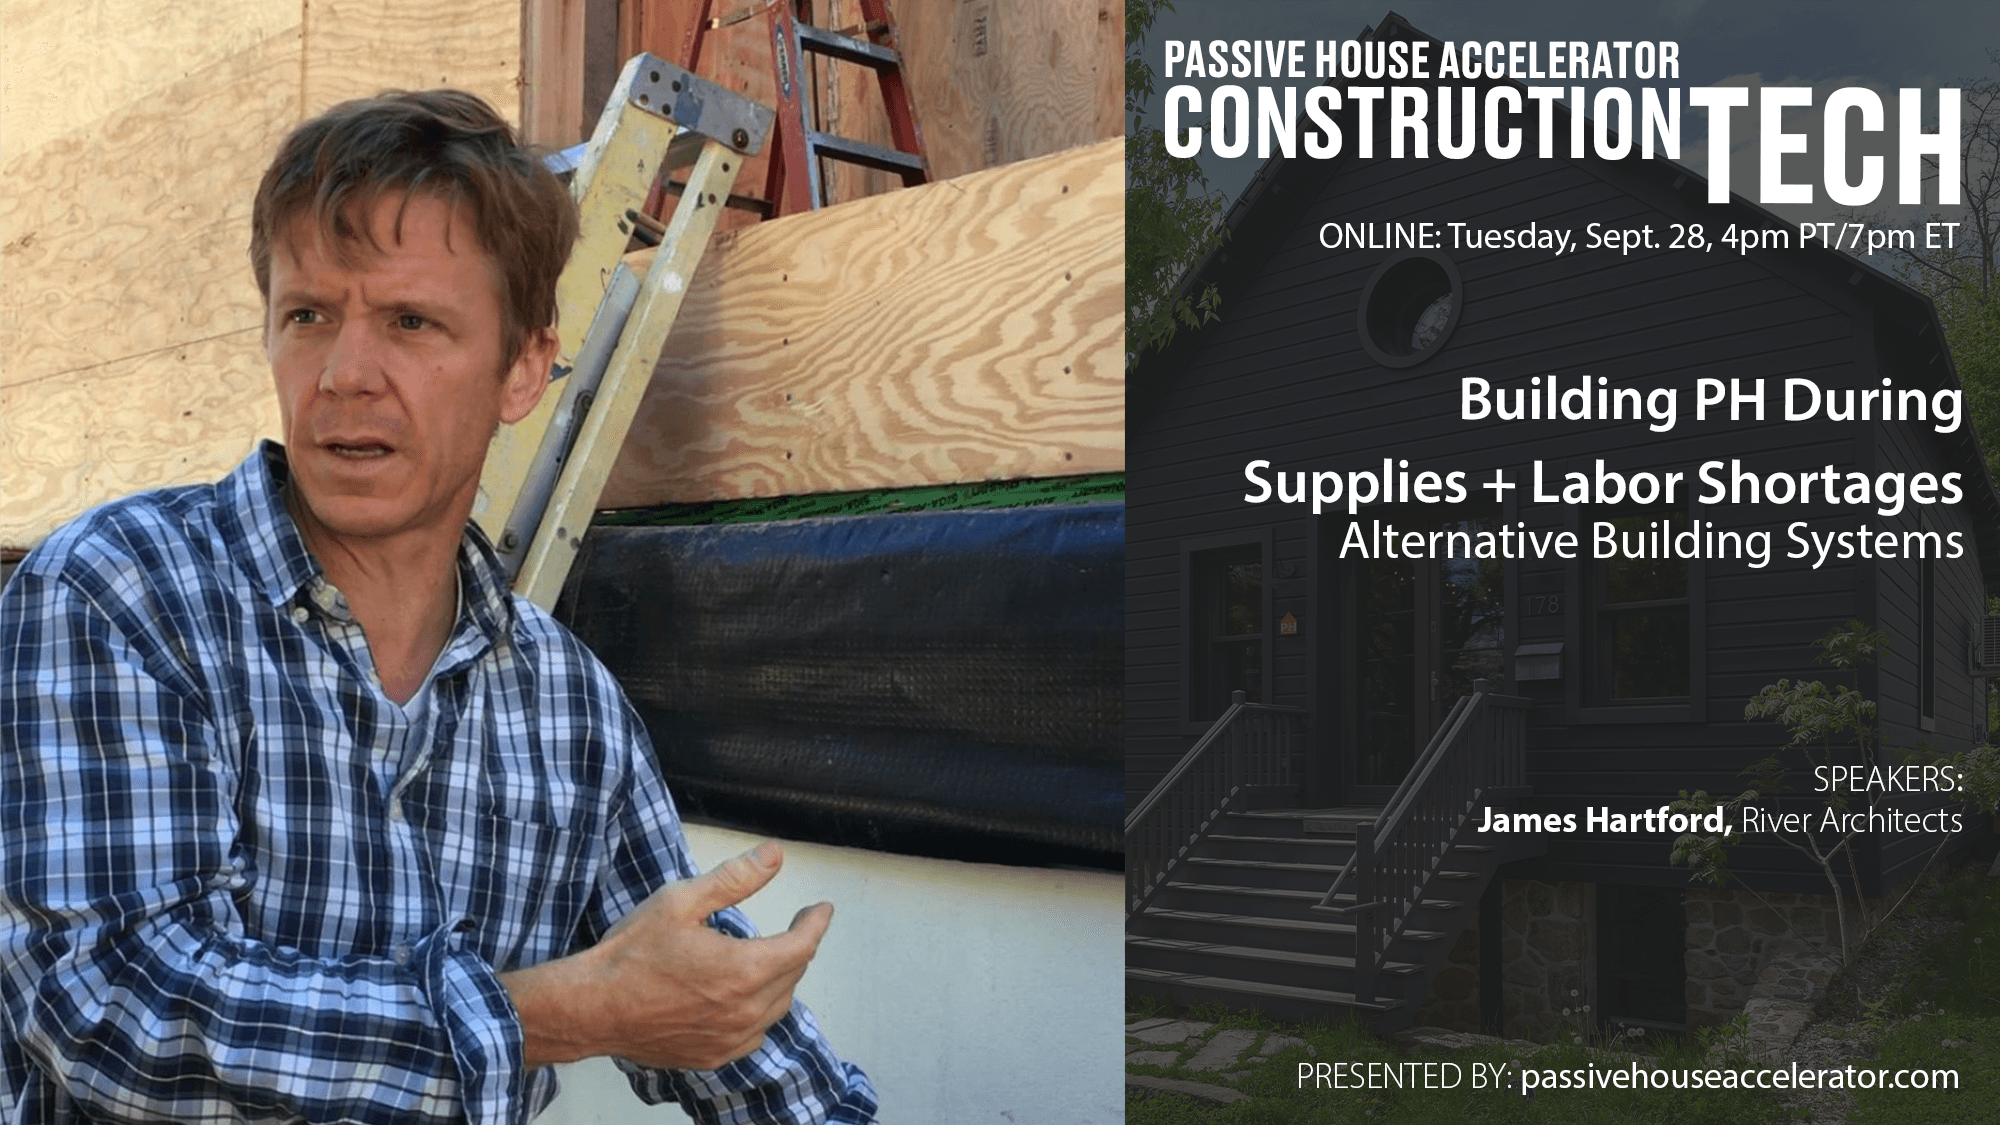 Passive House Building Systems During Labor and Supplies Shortages